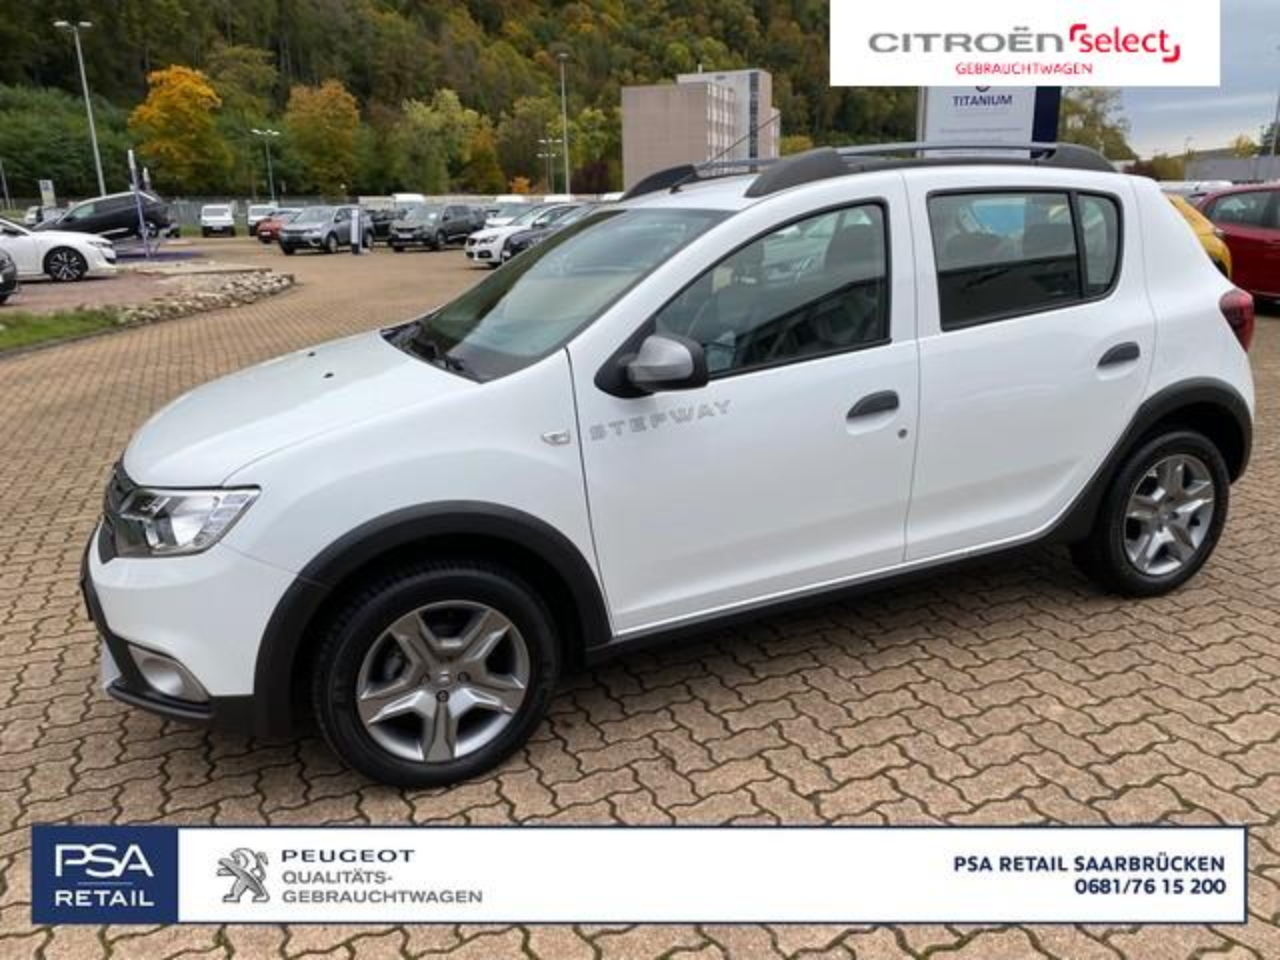 Dacia Sandero Stepway Celebration TCe 90PS Navi|Klima|Kamera|LM